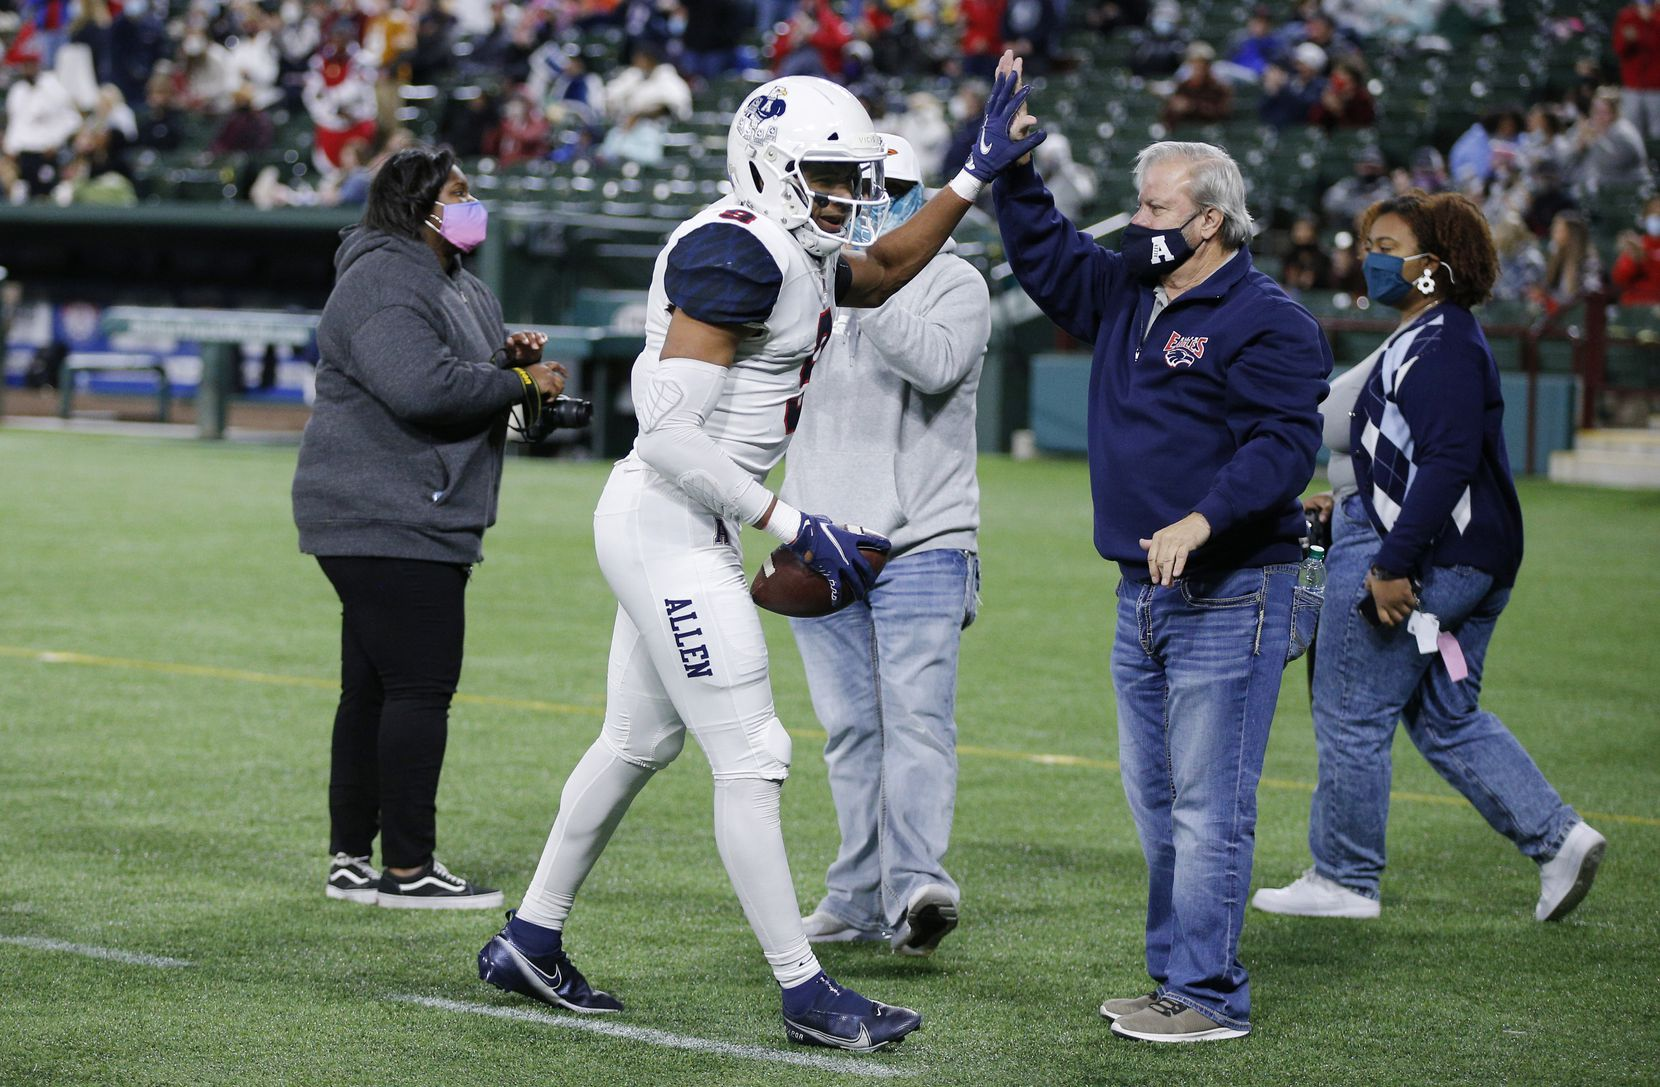 Allen senior wide receiver Bryson Green (9) high fives a fan on the sidelines after scoring a touchdown during the first half of a high school Class 6A Division I Region I semifinal football game against Euless Trinity at Globe Life Park in Arlington, Saturday, December 26, 2020. (Brandon Wade/Special Contributor)